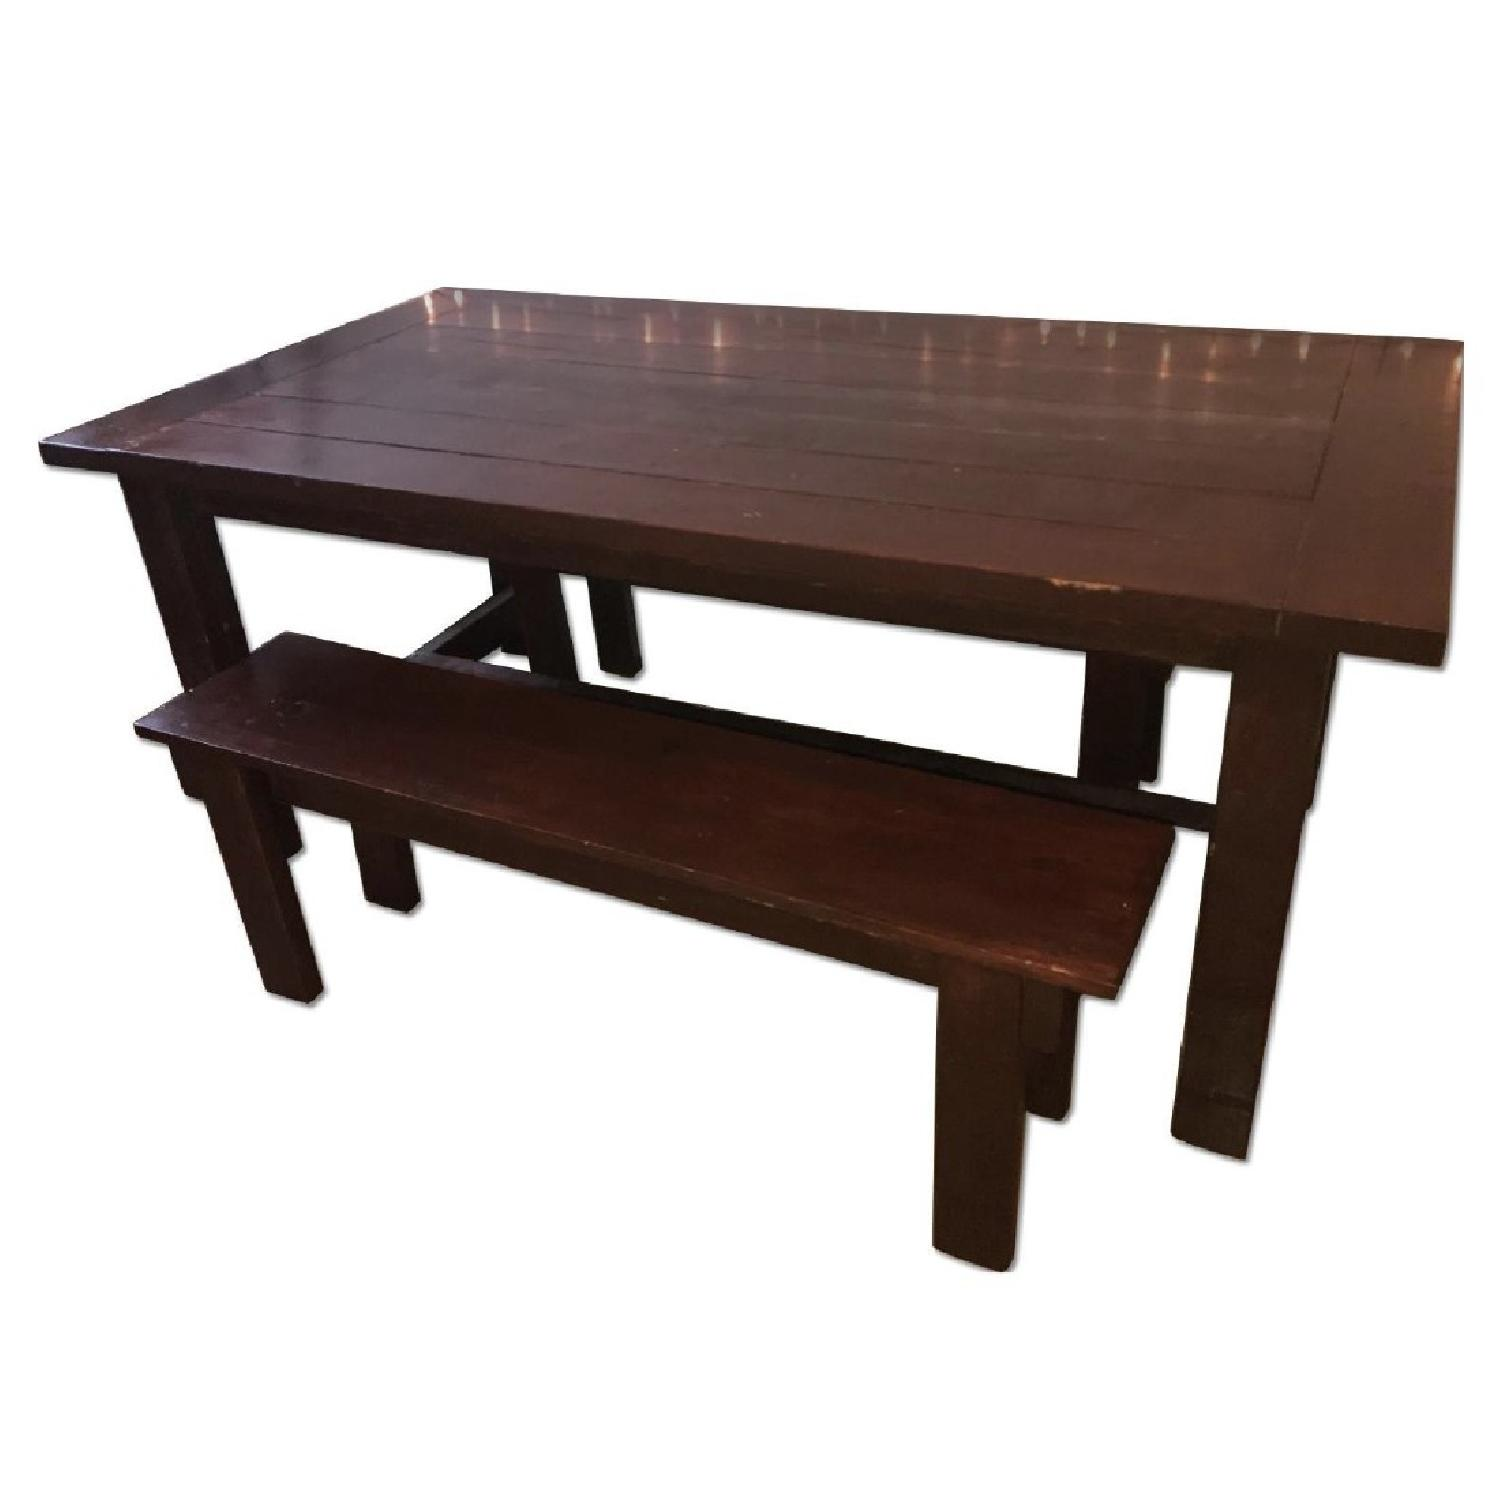 Custom Wood Farmhouse Rustic Dining Table w/ 2 Benches - image-0